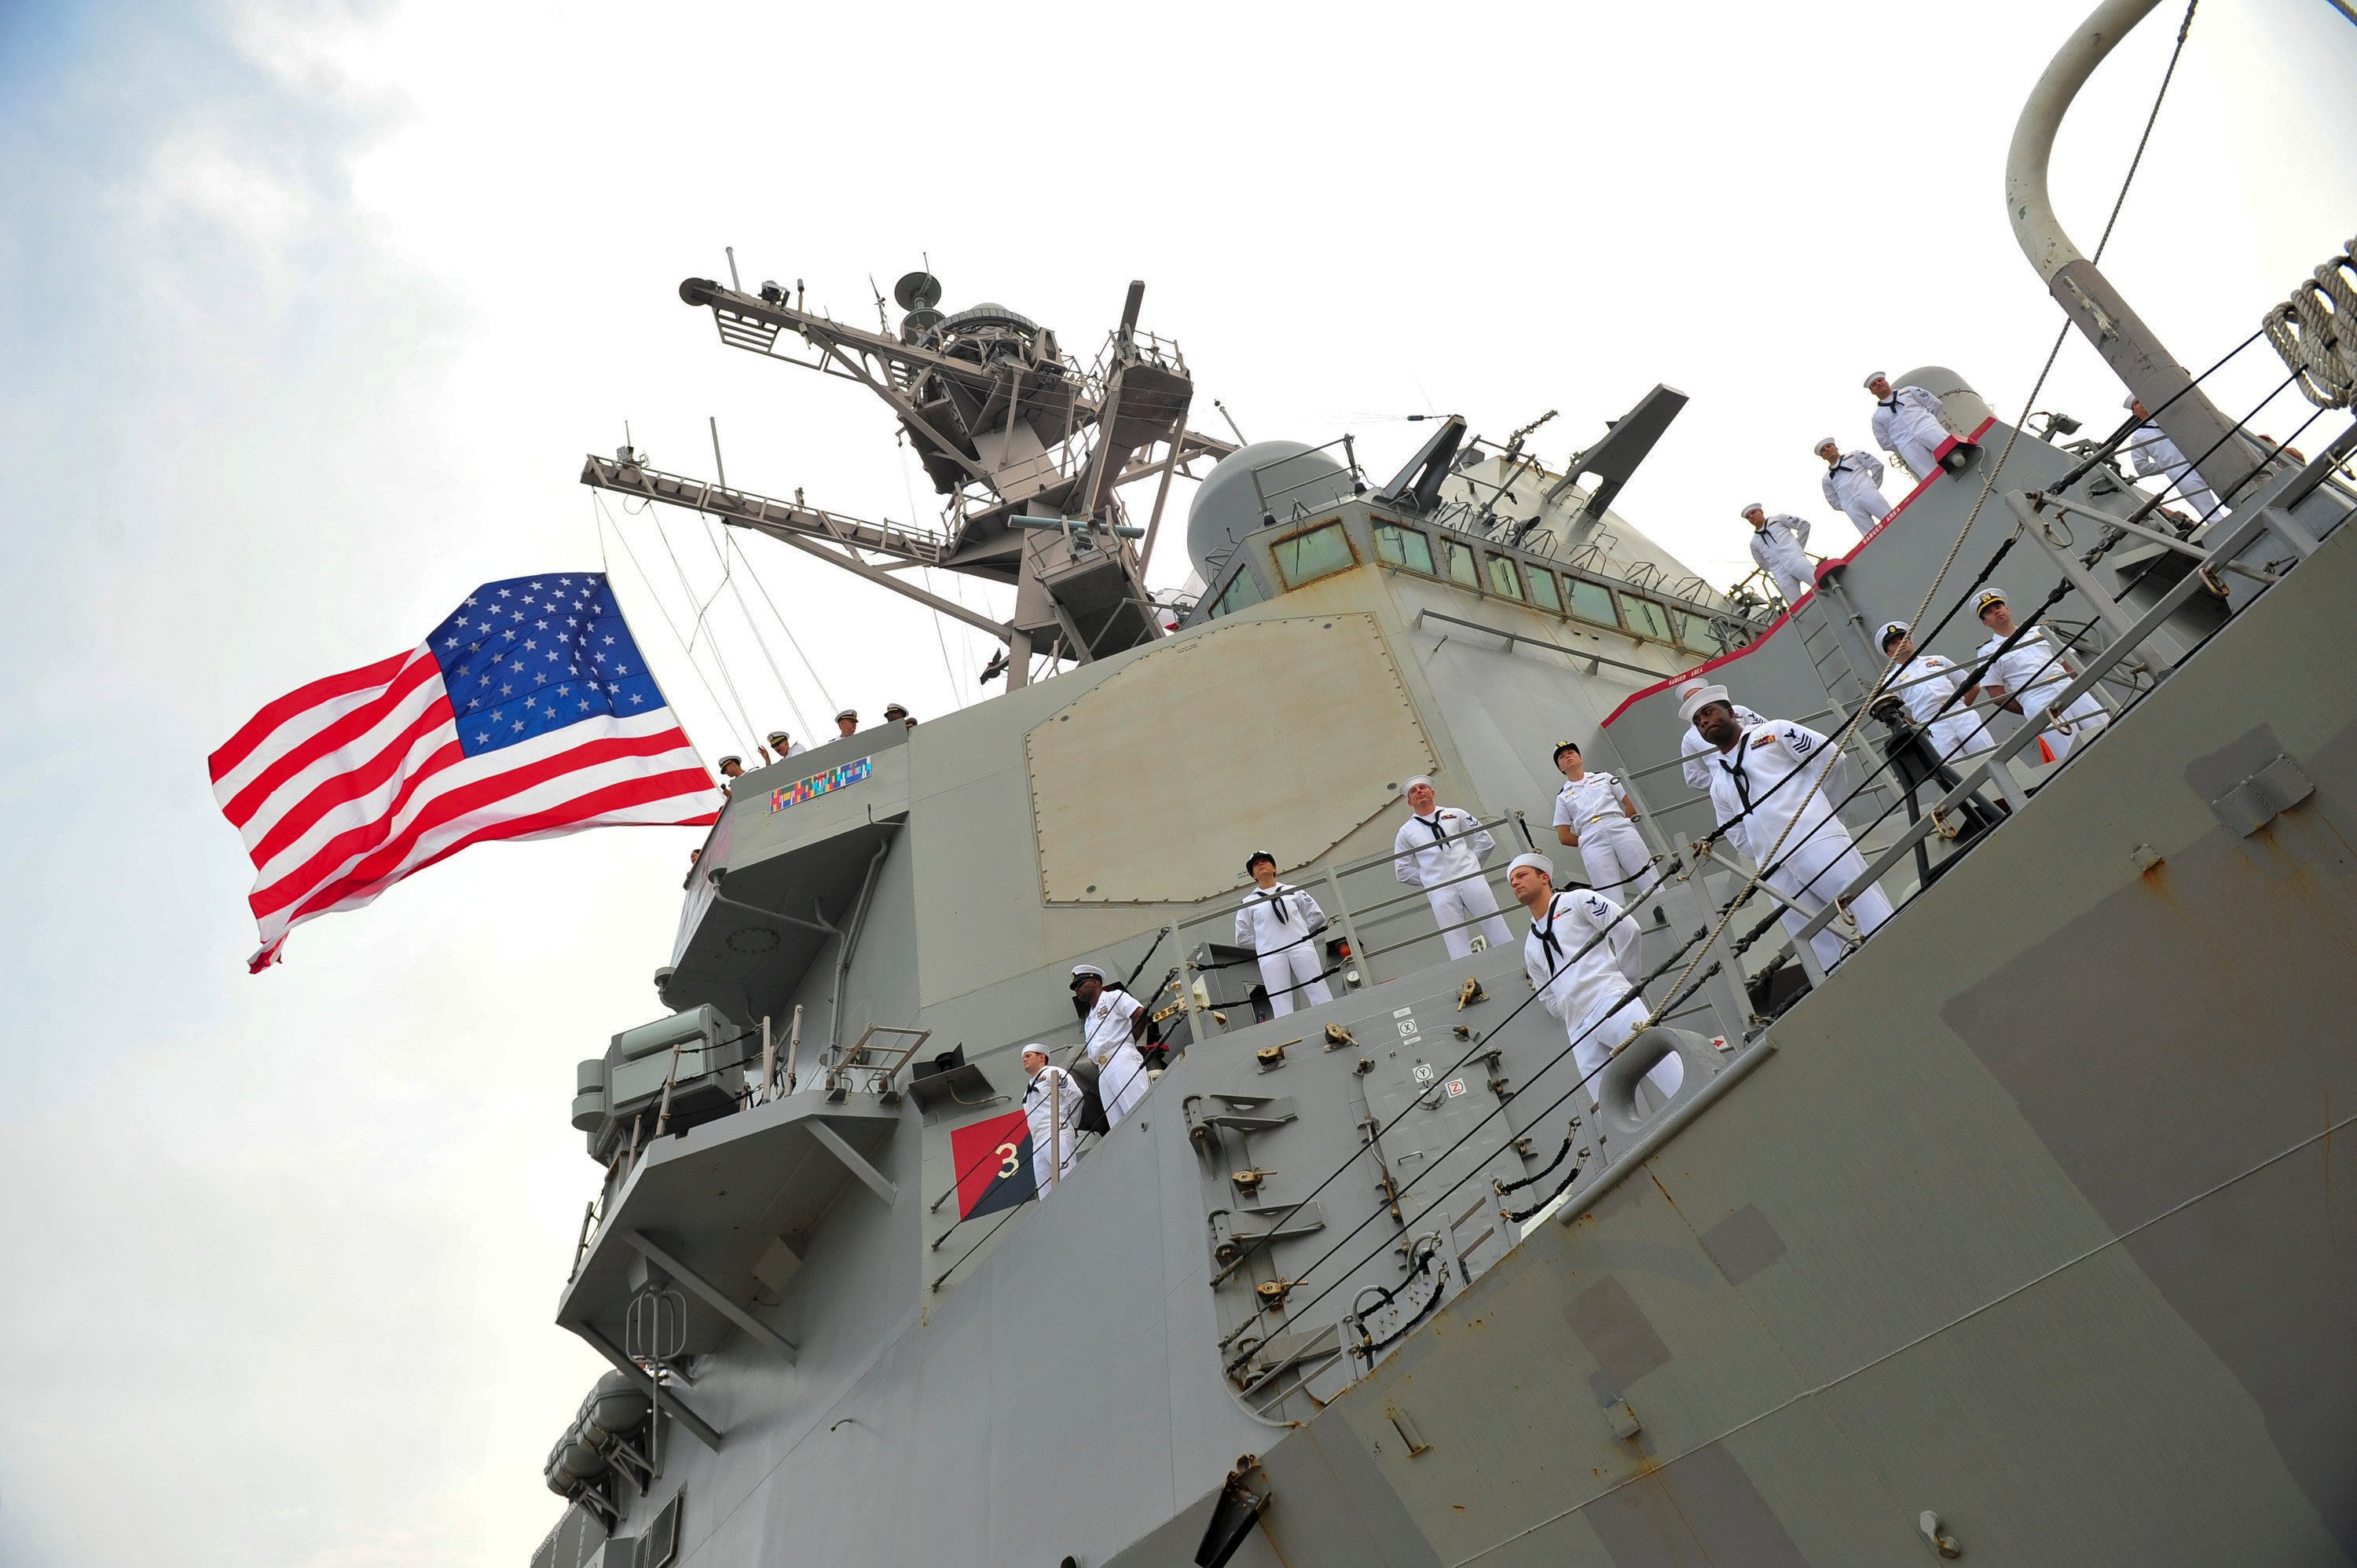 USS Carney (DDG-64) returns to port at Naval Station Mayport, Fla. on May 25, 2014. US Navy Photo